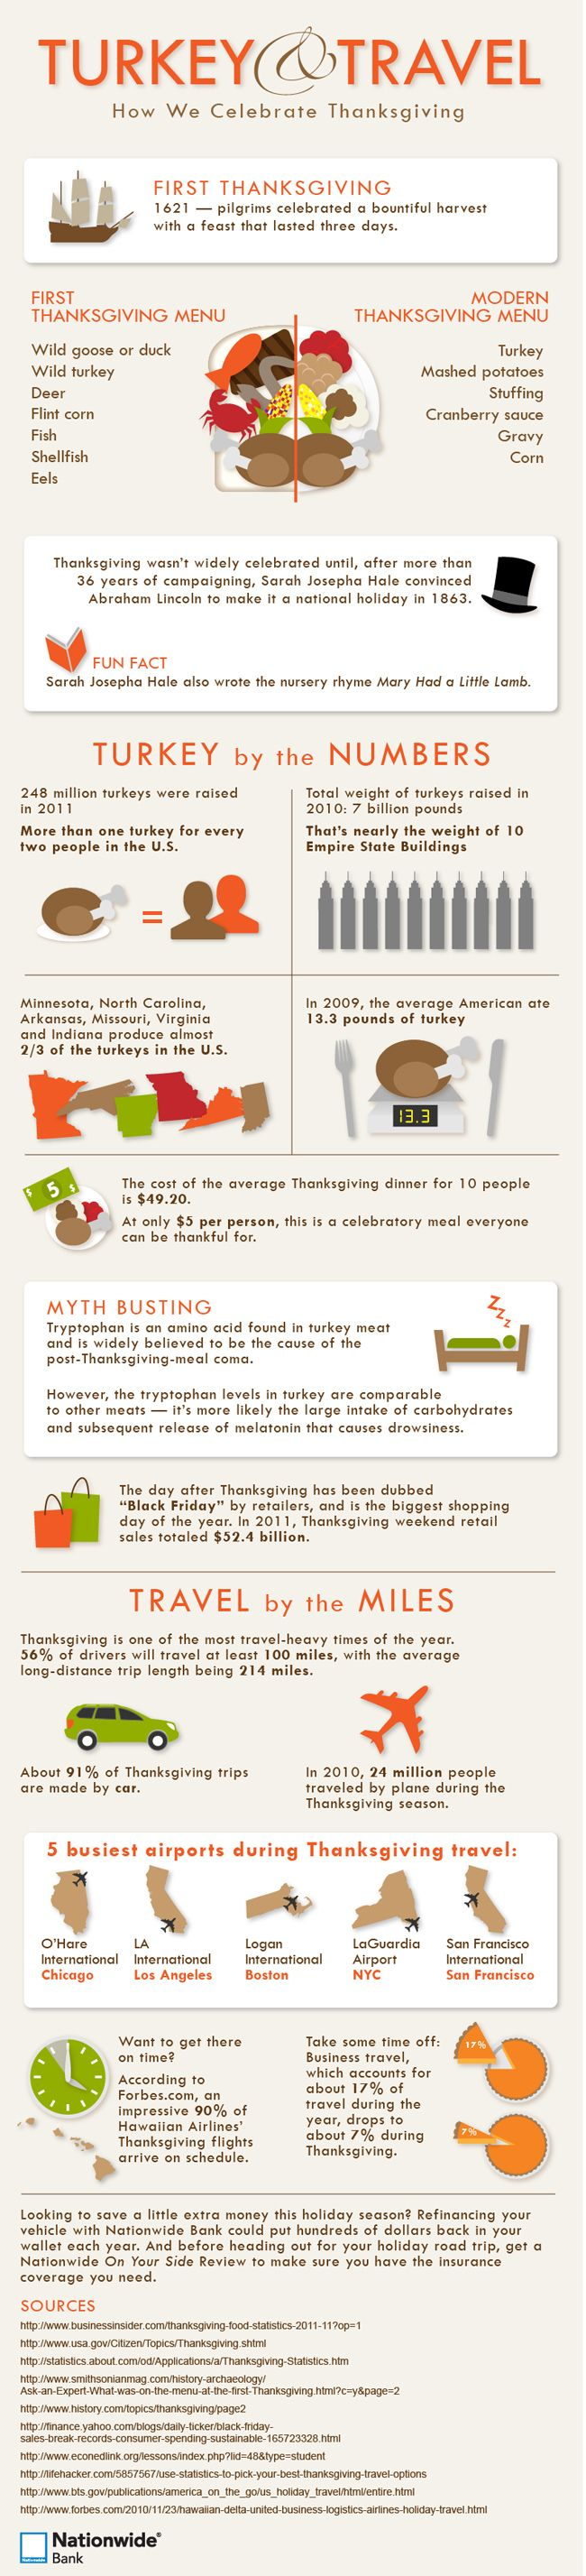 Thanks giving facts (infographic)